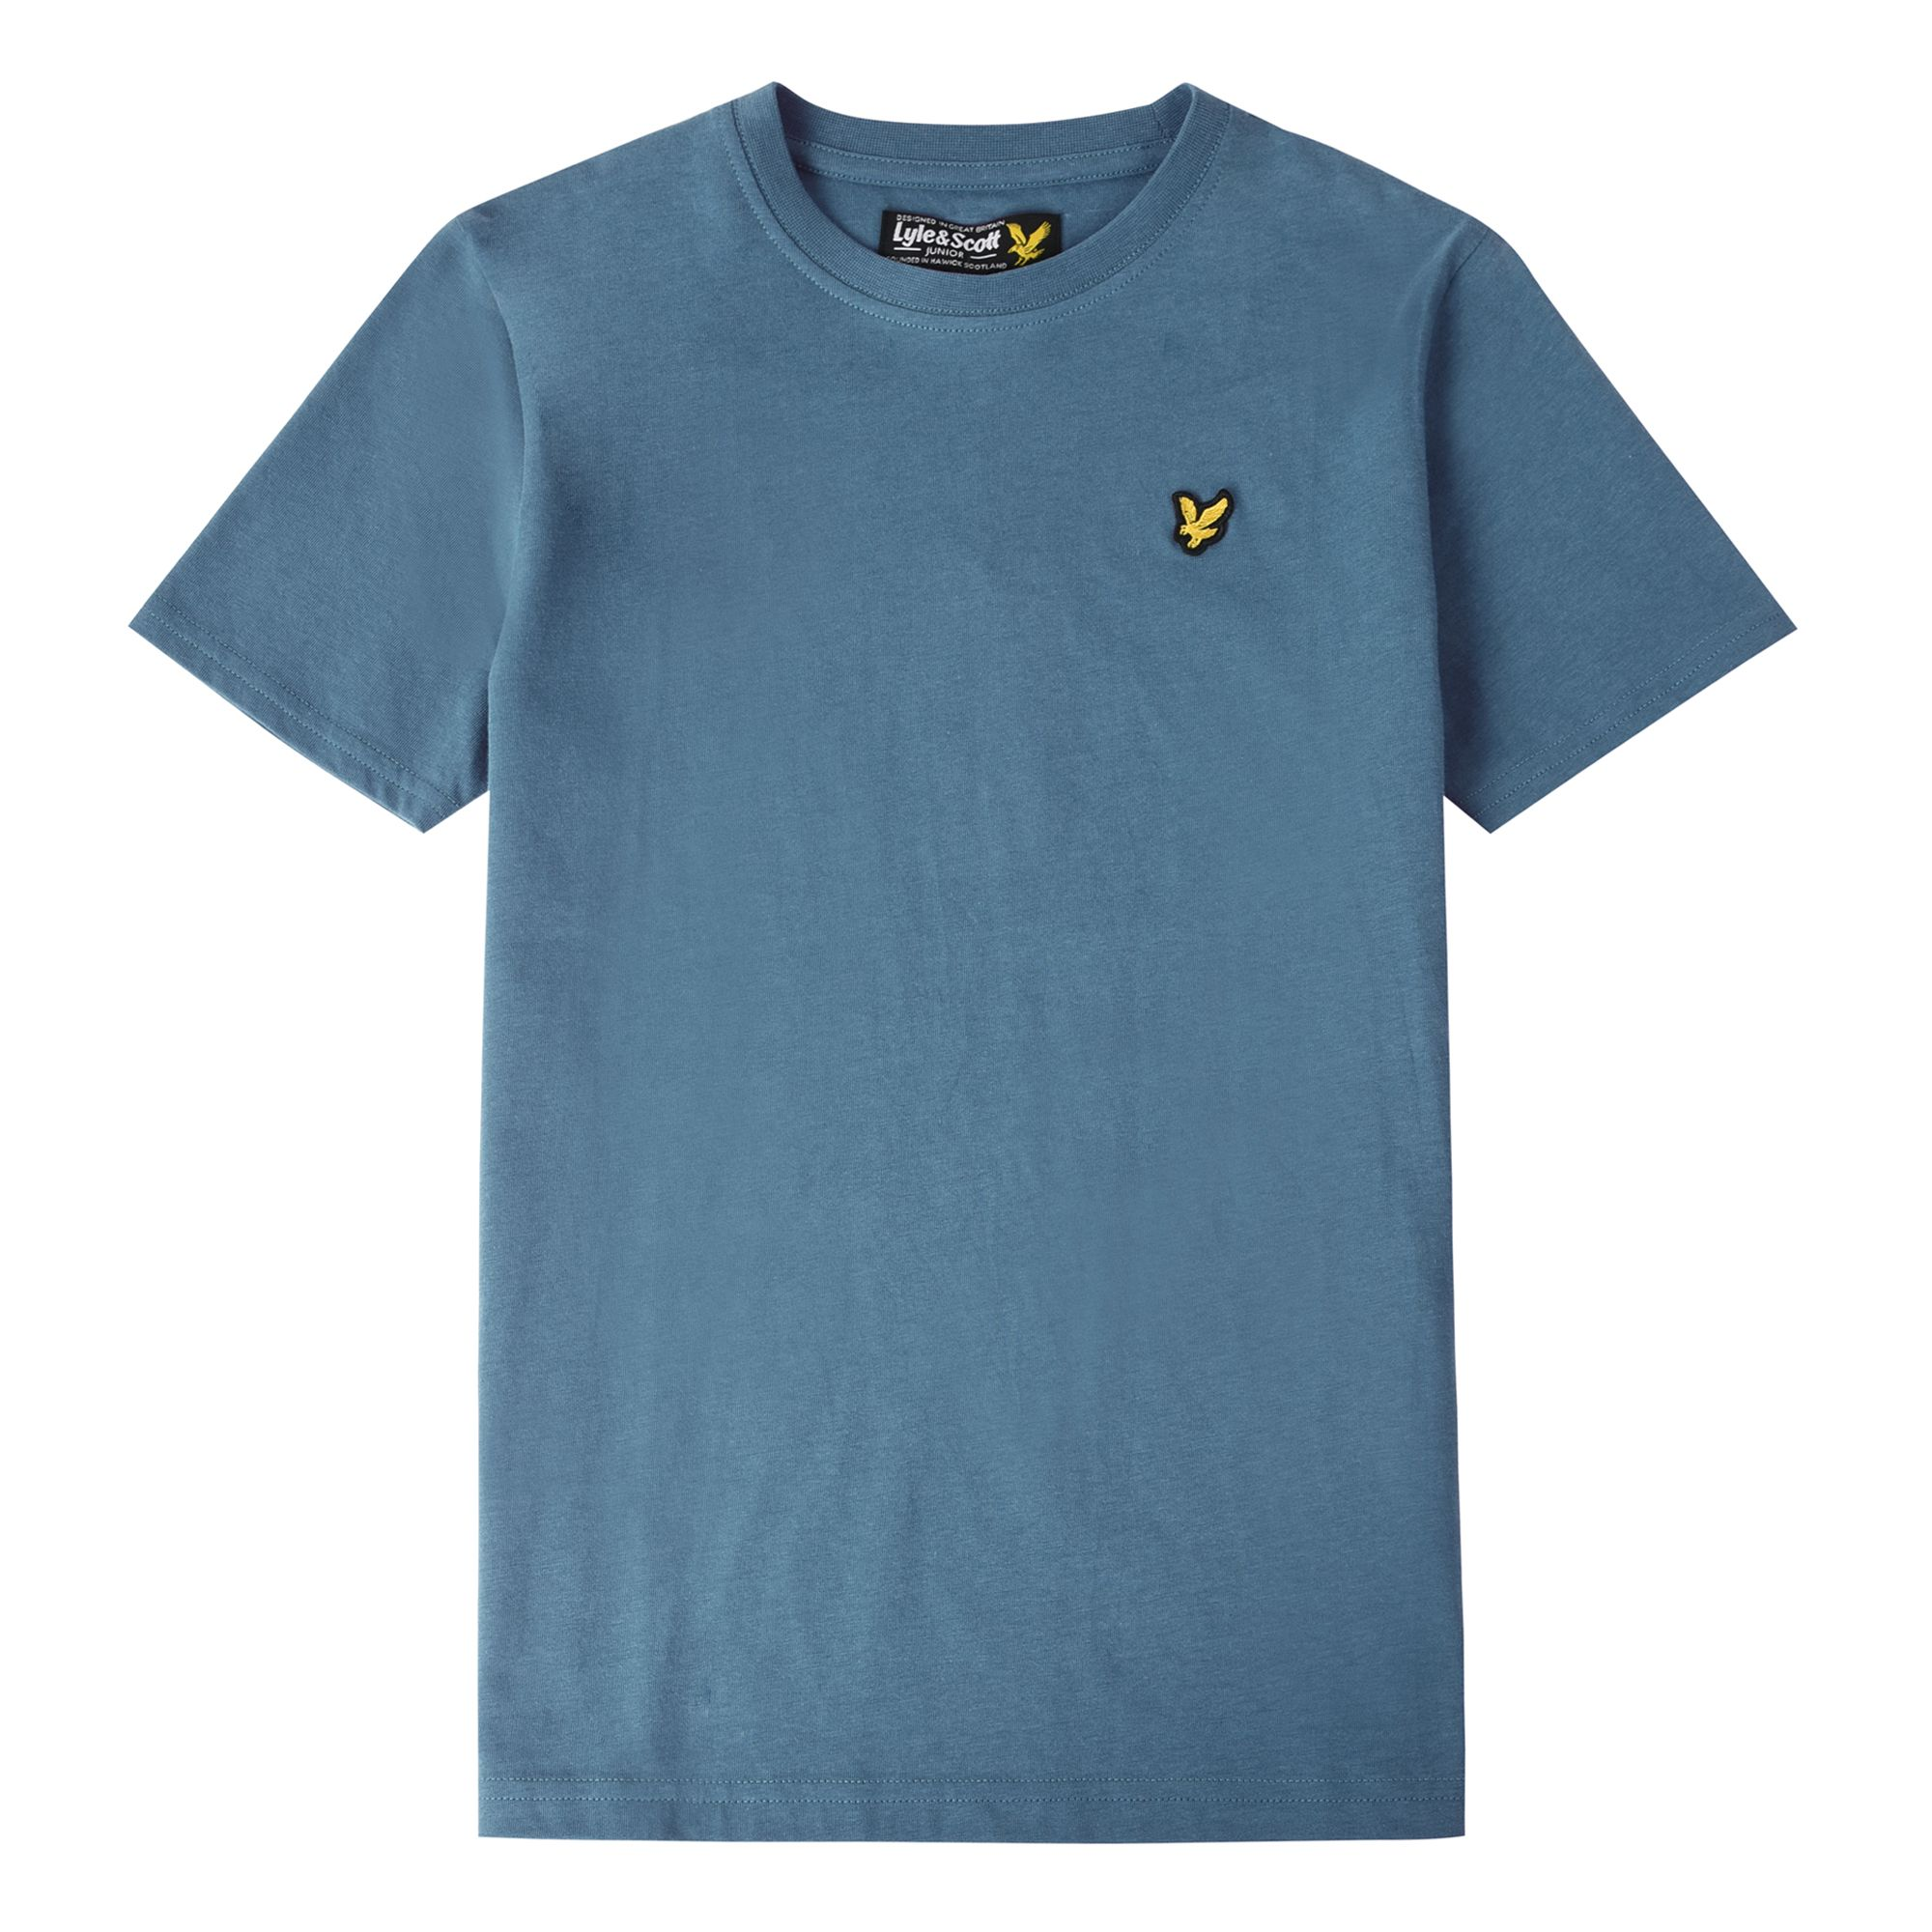 Lyle & Scott Classic T-shirt Bluestone